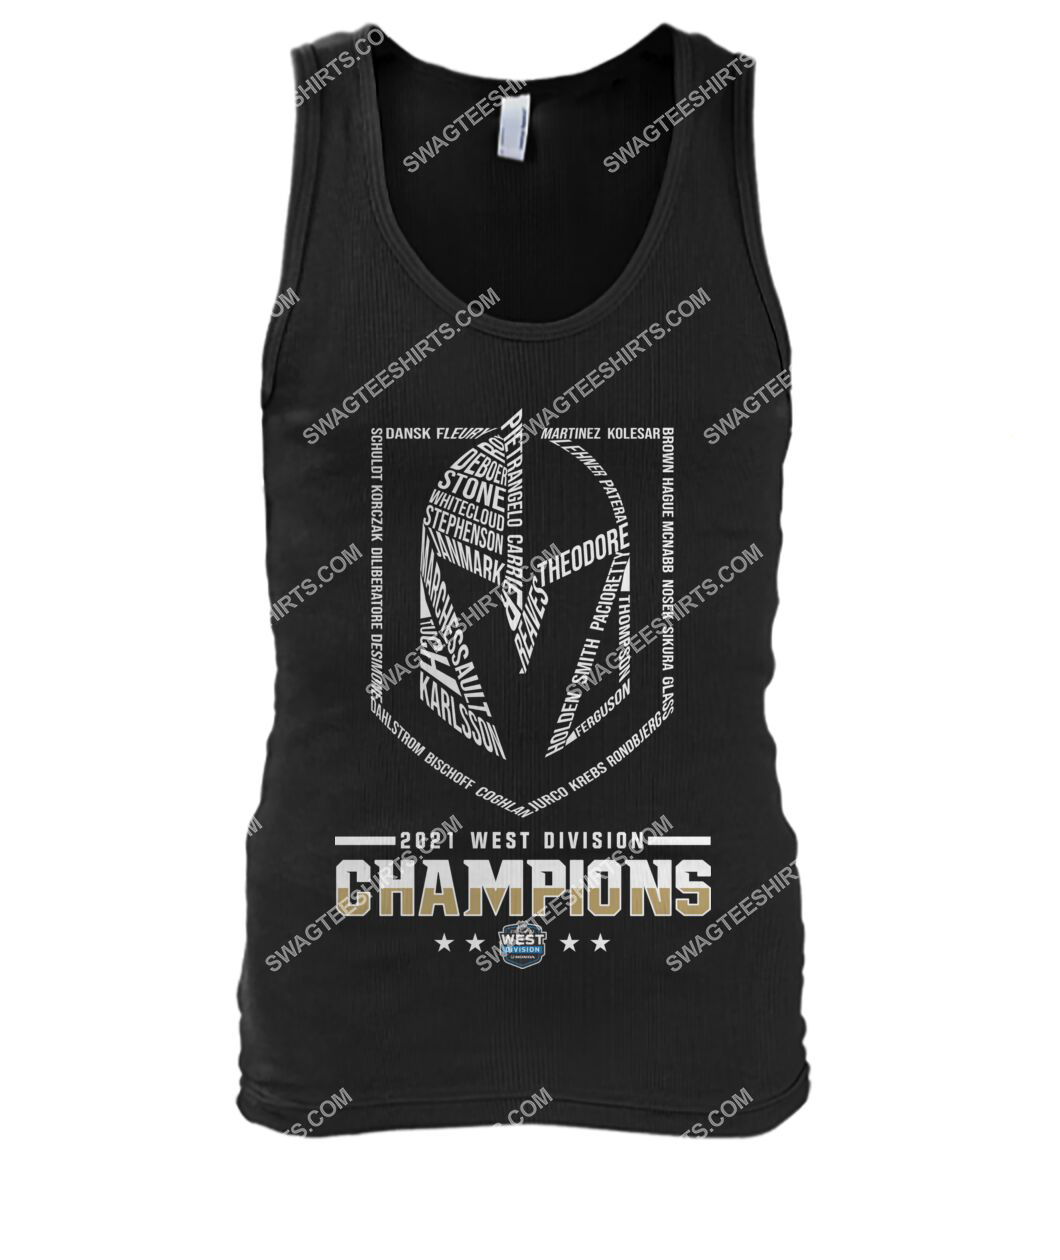 2021 west division champions vegas golden knights tank top 1